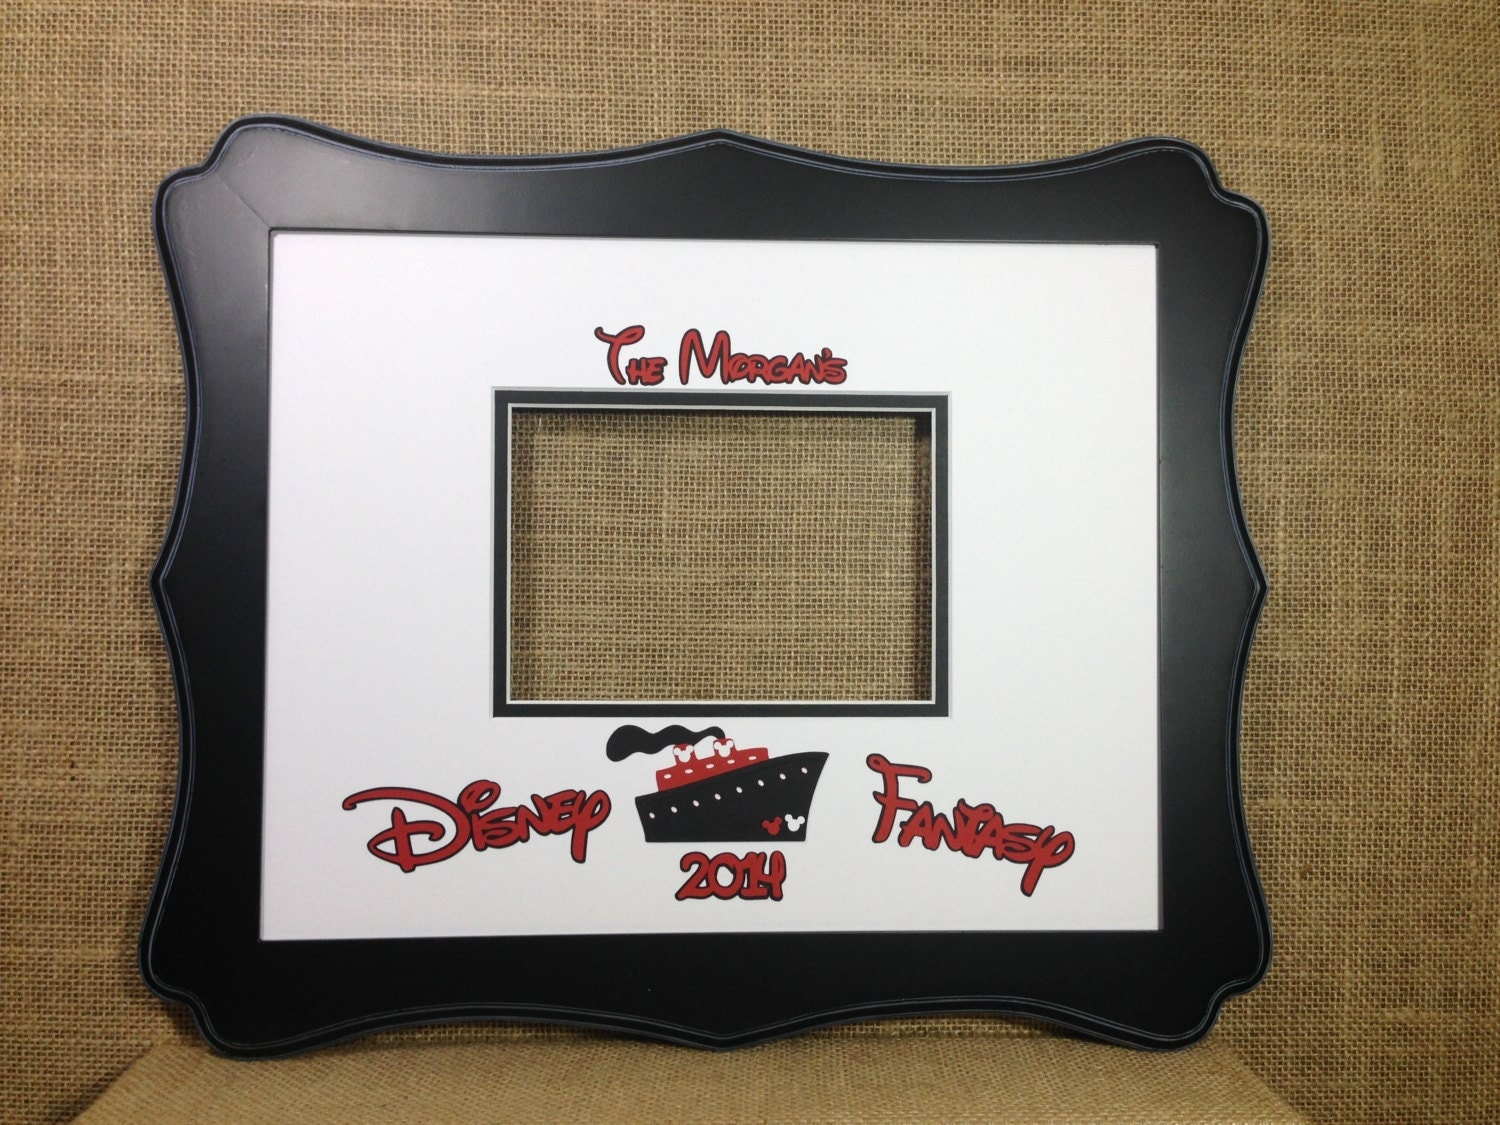 disney cruise inspired autograph book idea photo mat signature matte for 11x14 frame with 5x7 opening for photo memory keepsake